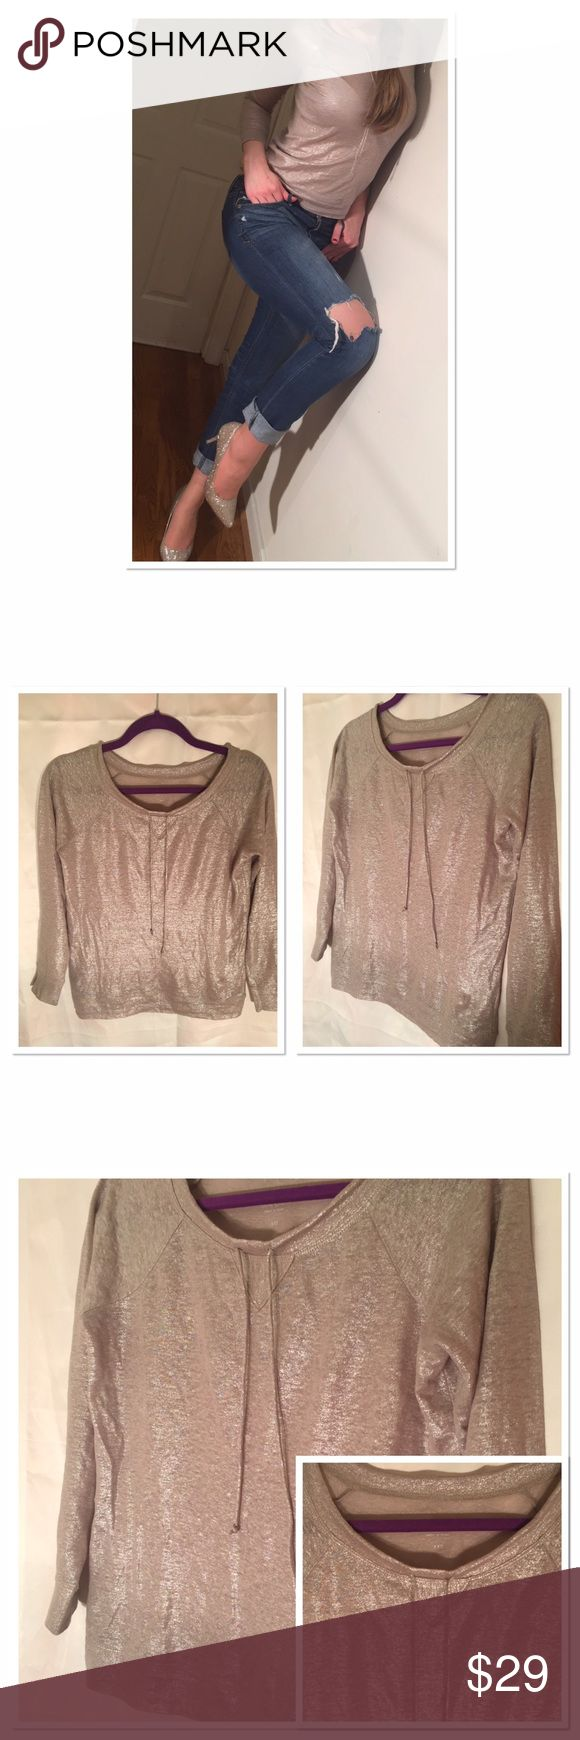 "Metallic 100% linen long sleeve J. Crew casual top Casual parties, outings with friends you name it! This top can be dressed up or down. Wonderful J. Crew quality metallic shine breathable material. Drawstring collar. Comfortable fit for size S- label XSS. Worn once, excellent condition. Bring a little sparkle to everyday's life! Pit to pit 17,5"" length 22"". J. Crew Tops Tees - Long Sleeve"